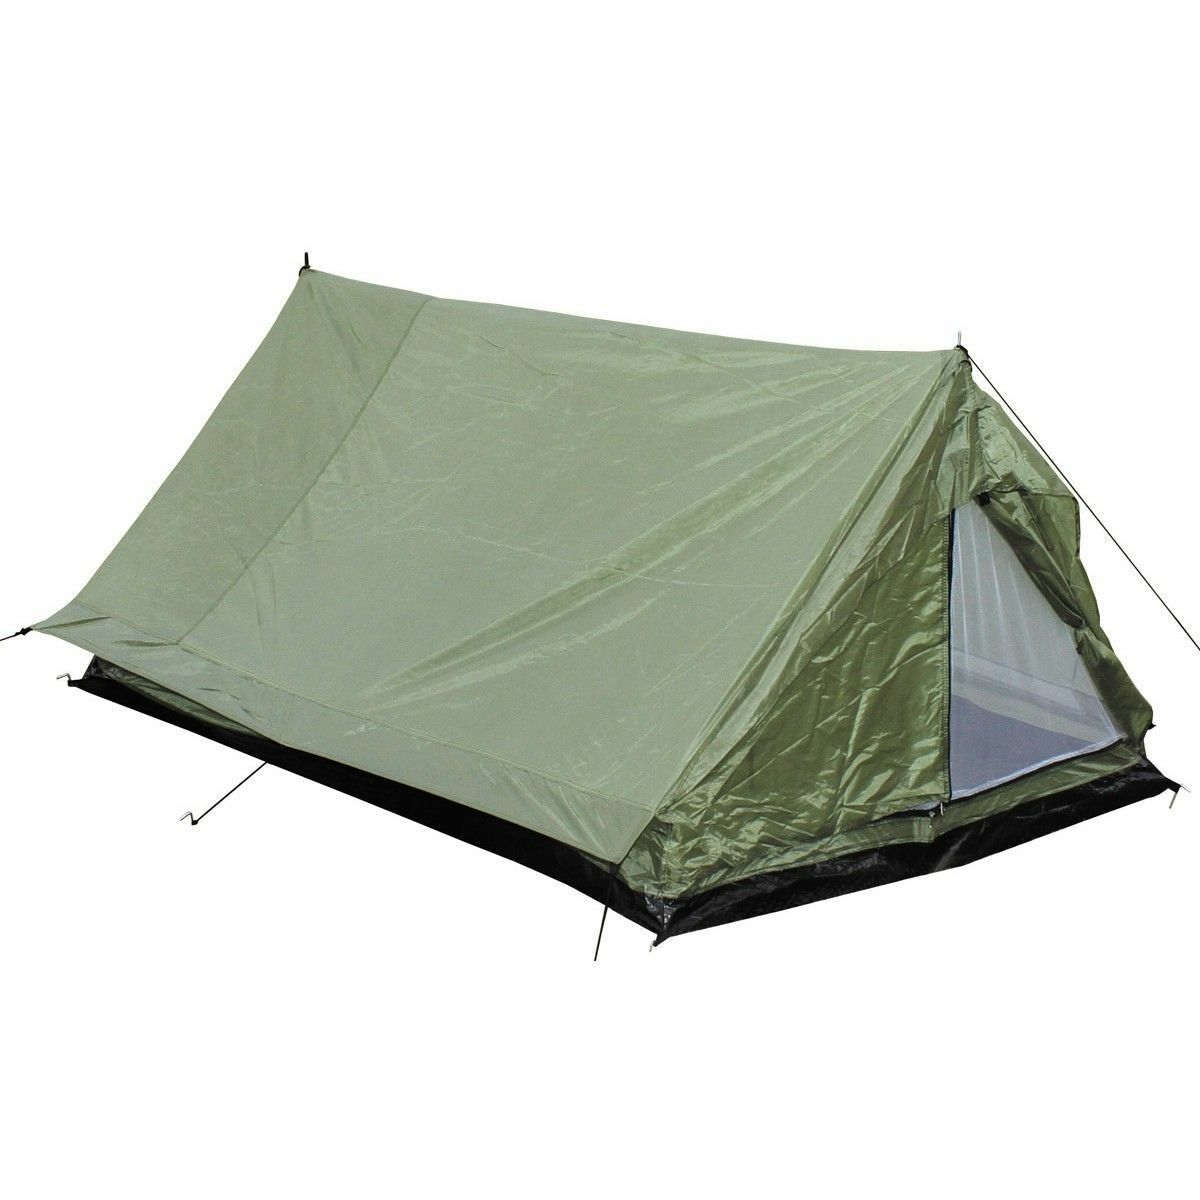 Standard Two Man Military Army Tactical Double Shelter - OD Green - Brand New